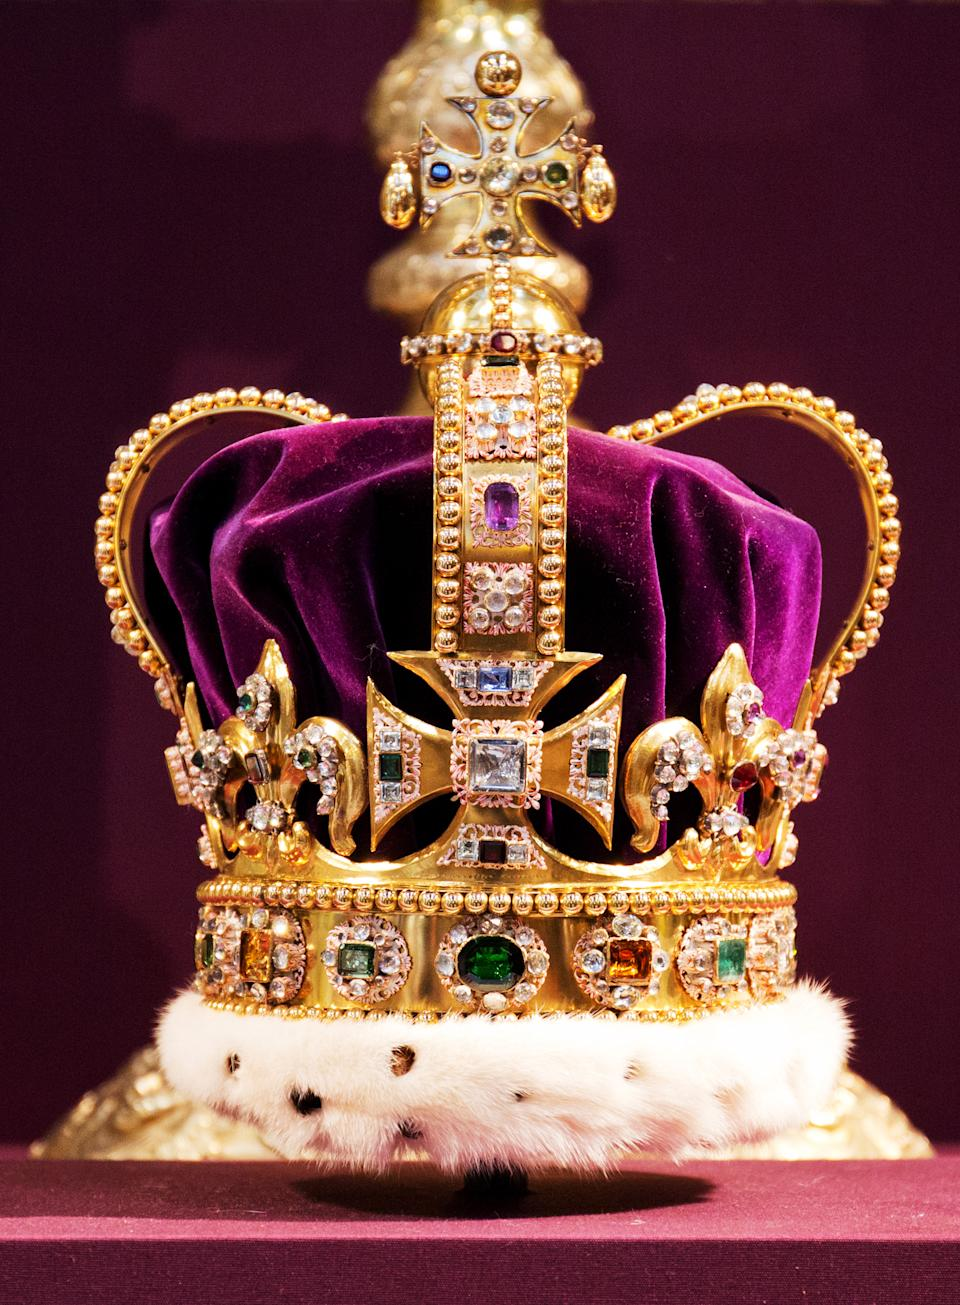 A picture shows St Edward's Crown, the crown used in coronations for English and later British monarchs, and one of the senior Crown Jewels of Britain, during a service to celebrate the 60th anniversary of the coronation of Queen Elizabeth II at Westminster Abbey in London on June 4, 2013.  Queen Elizabeth II marked the 60th anniversary of her coronation with a service at Westminster Abbey filled with references to the rainy day in 1953 when she was crowned.  AFP PHOTO / POOL / JACK HILL (Photo by JACK HILL / POOL / AFP) (Photo by JACK HILL/POOL/AFP via Getty Images)